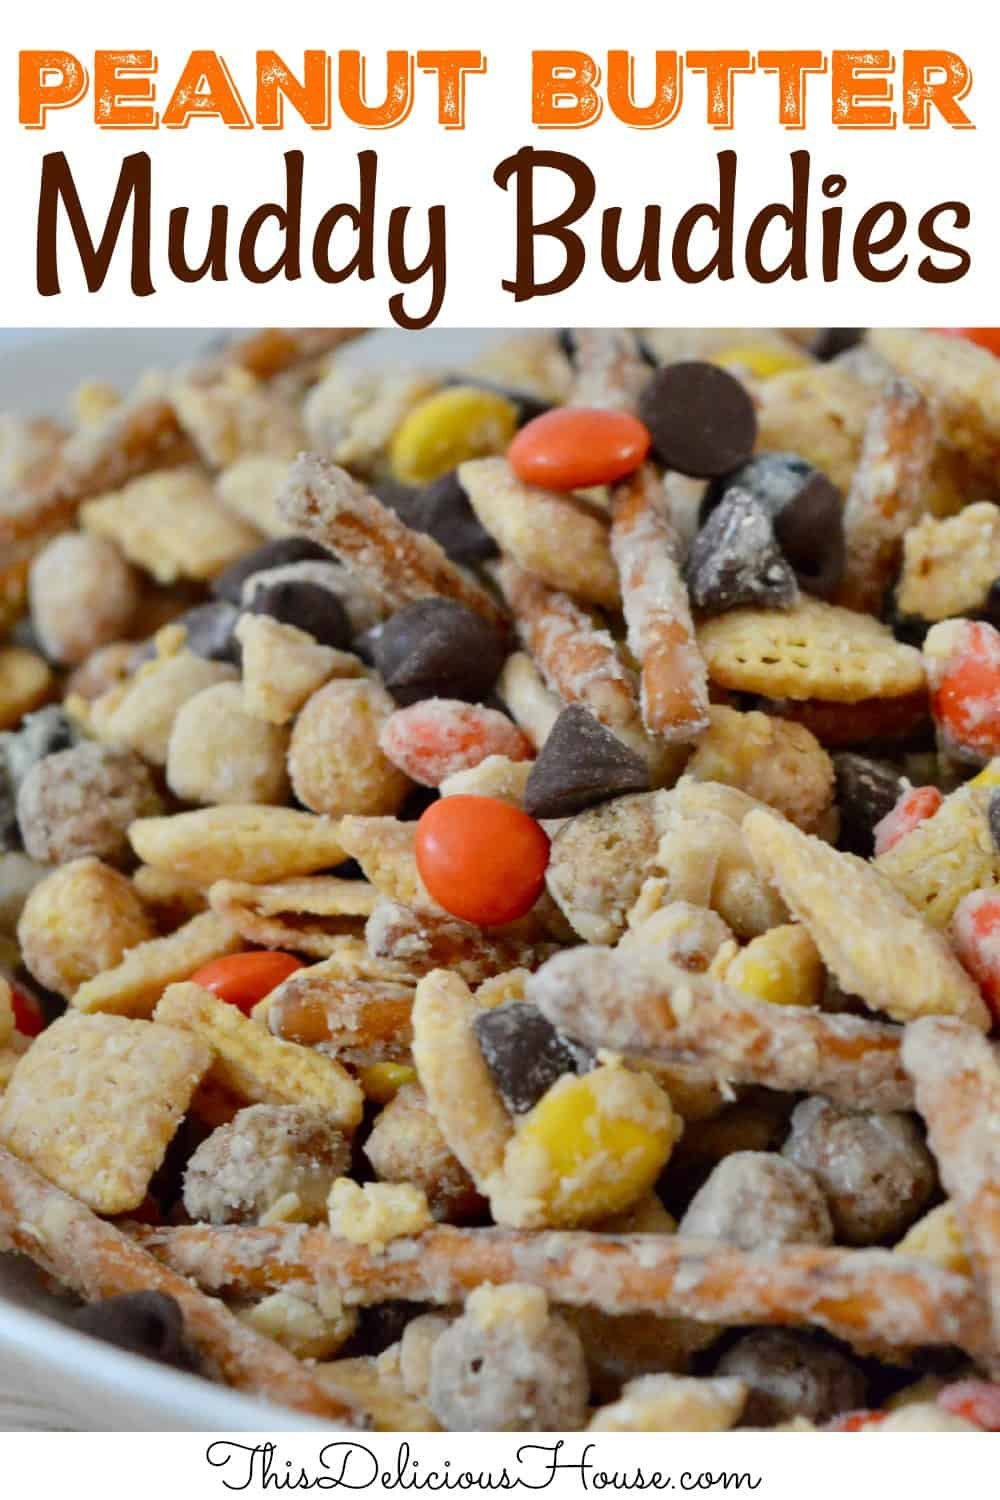 Peanut Butter Muddy Buddies Pinterest Pin.